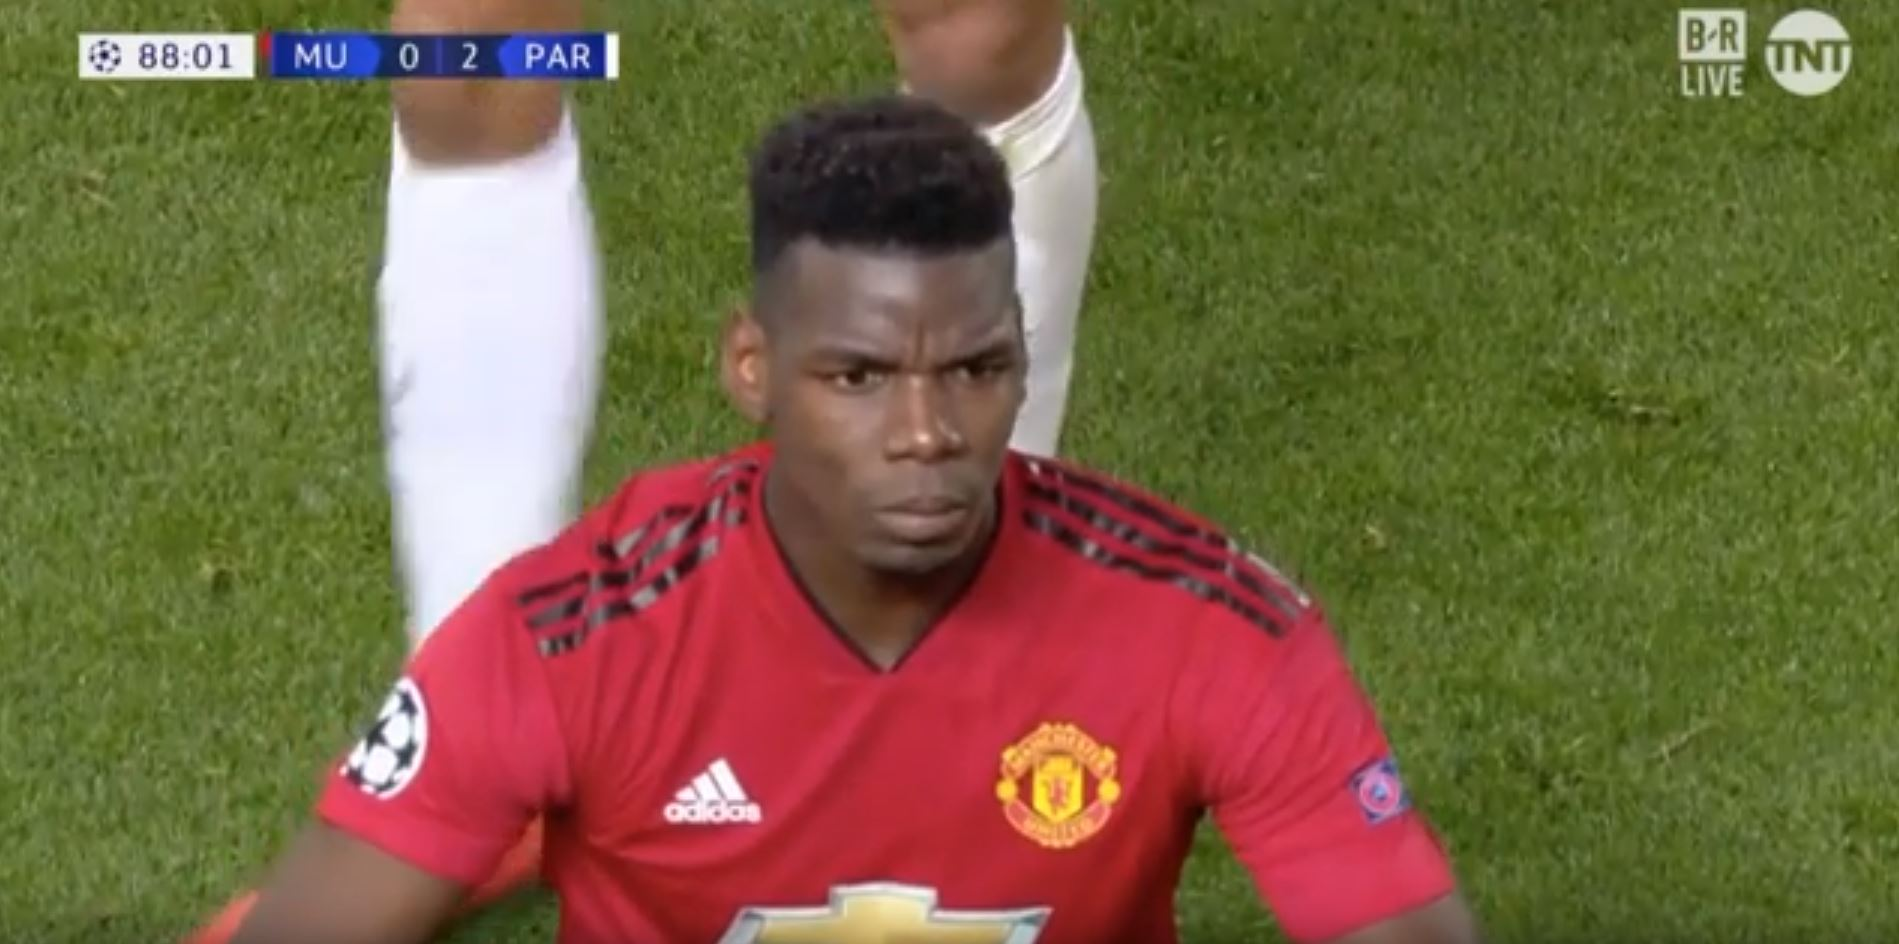 WATCH: Pogba Sent Off At The End Of The Game!